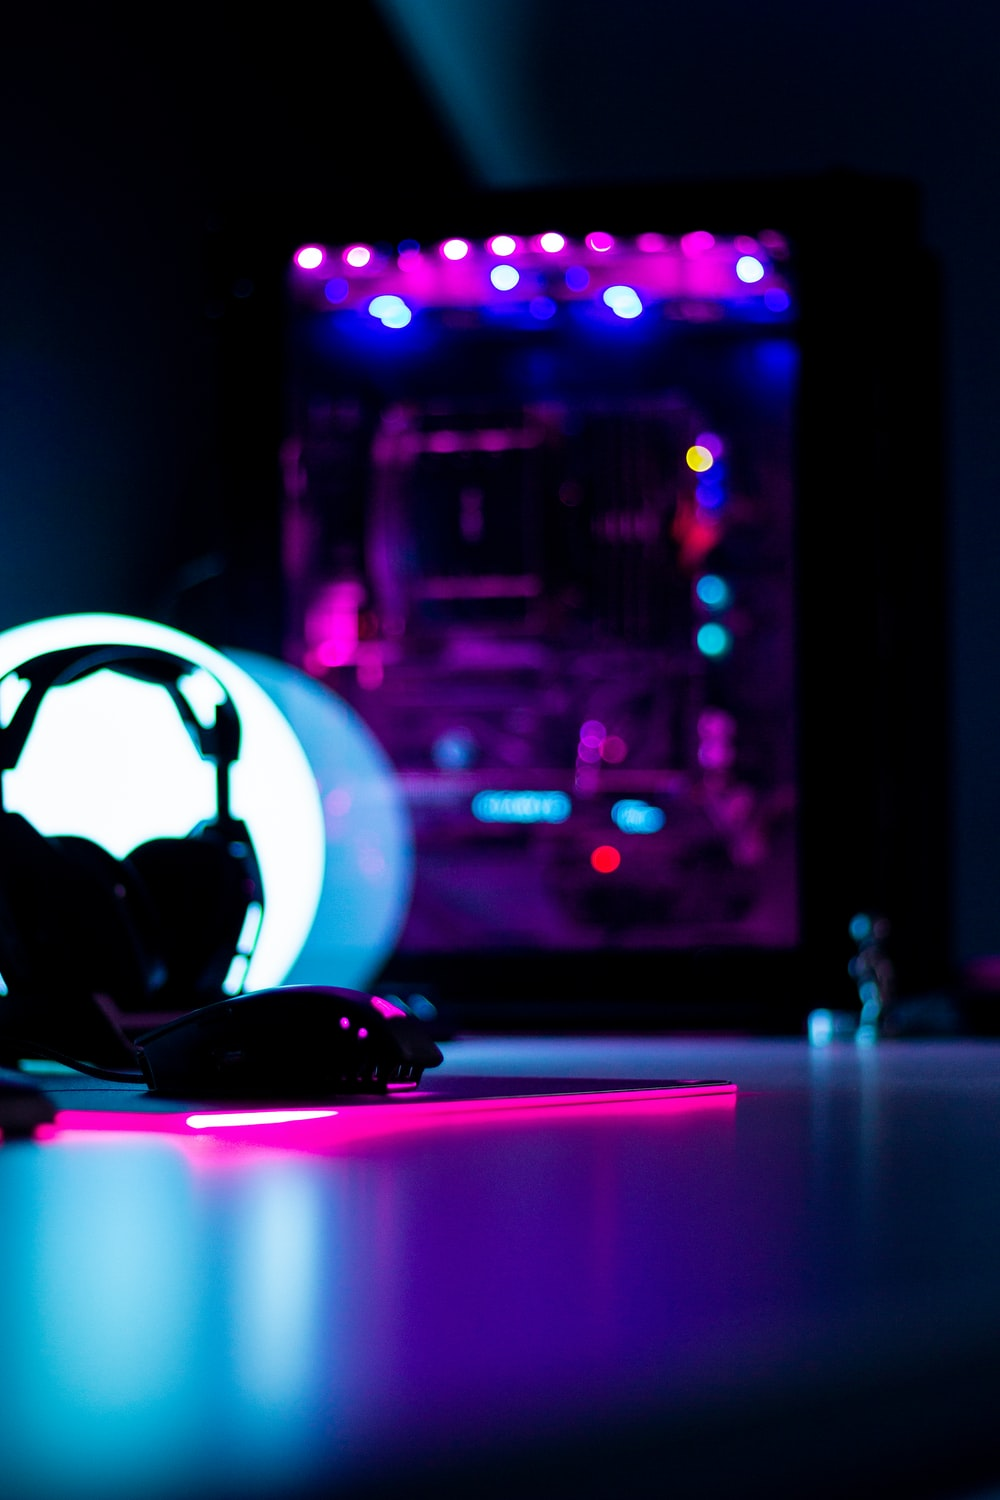 white and black soccer ball on table